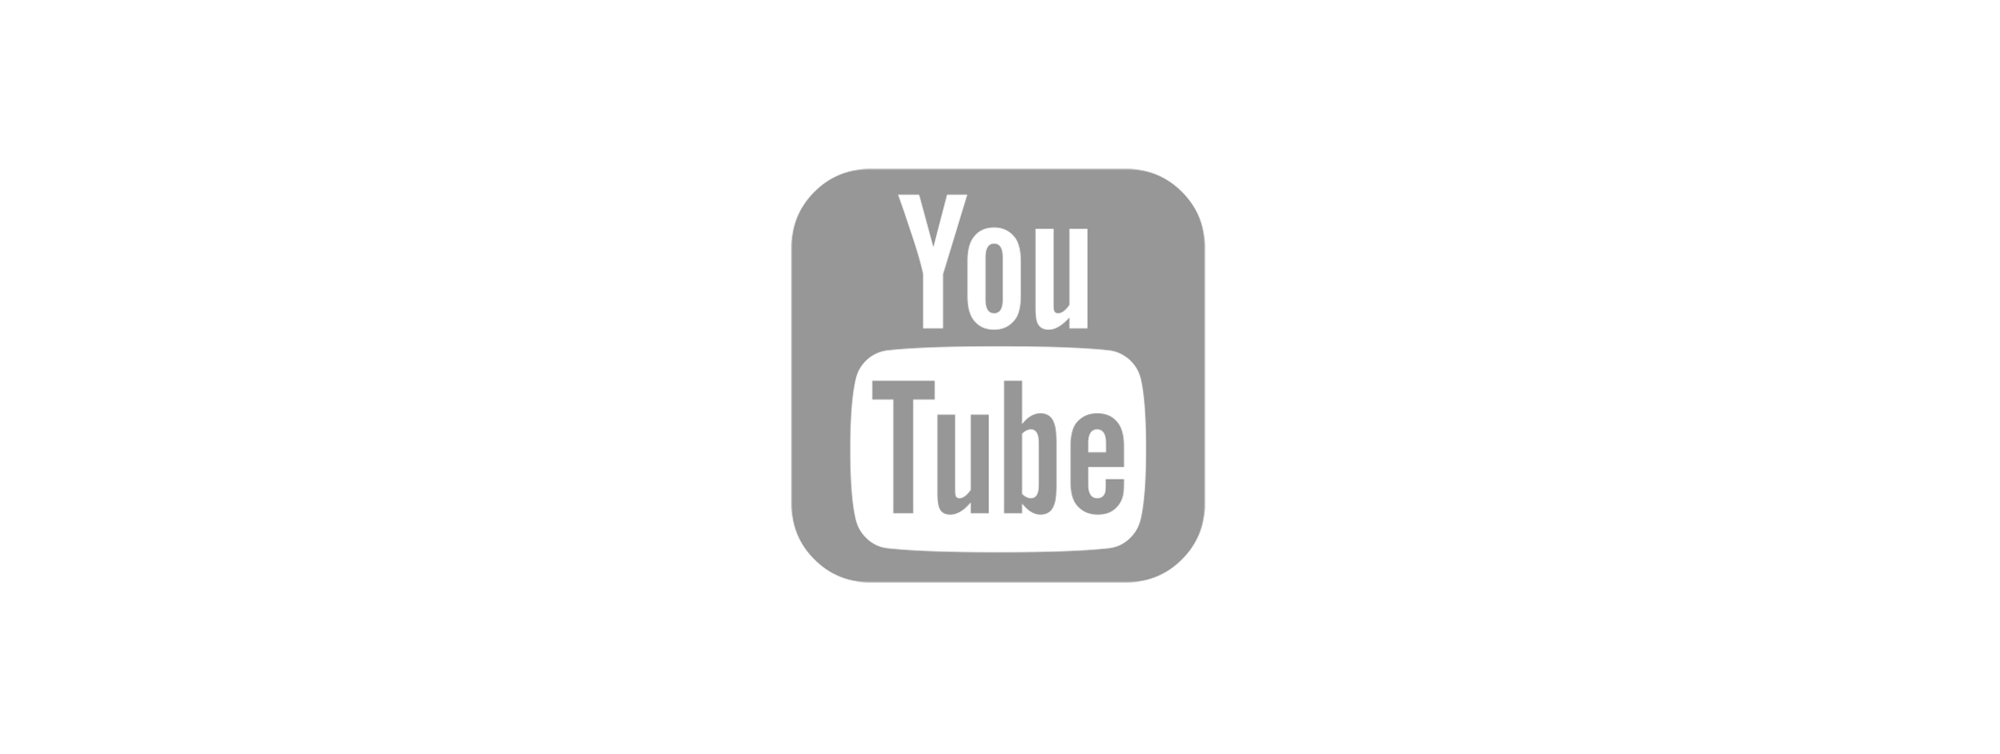 PP-SOCIAL-MEDIA-ICONS-YOUTUBE